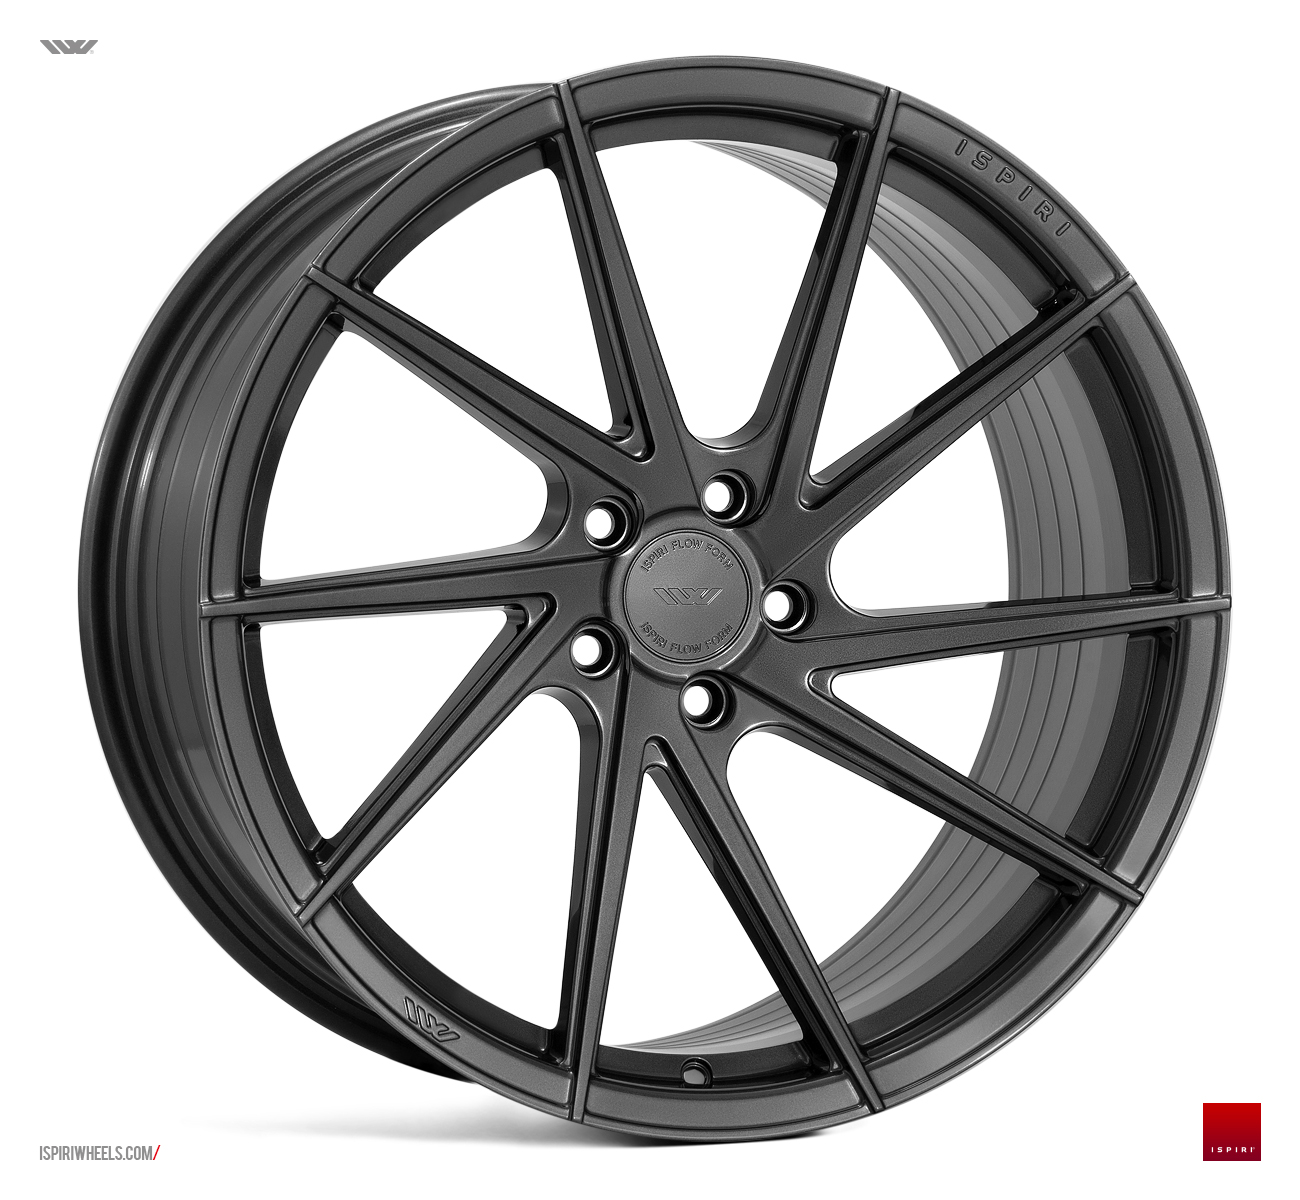 "NEW 20"" ISPIRI FFR1D MULTI-SPOKE DIRECTIONAL ALLOYS IN CARBON GRAPHITE, DEEPER CONCAVE 10"" REARS ET42/45 5x112"